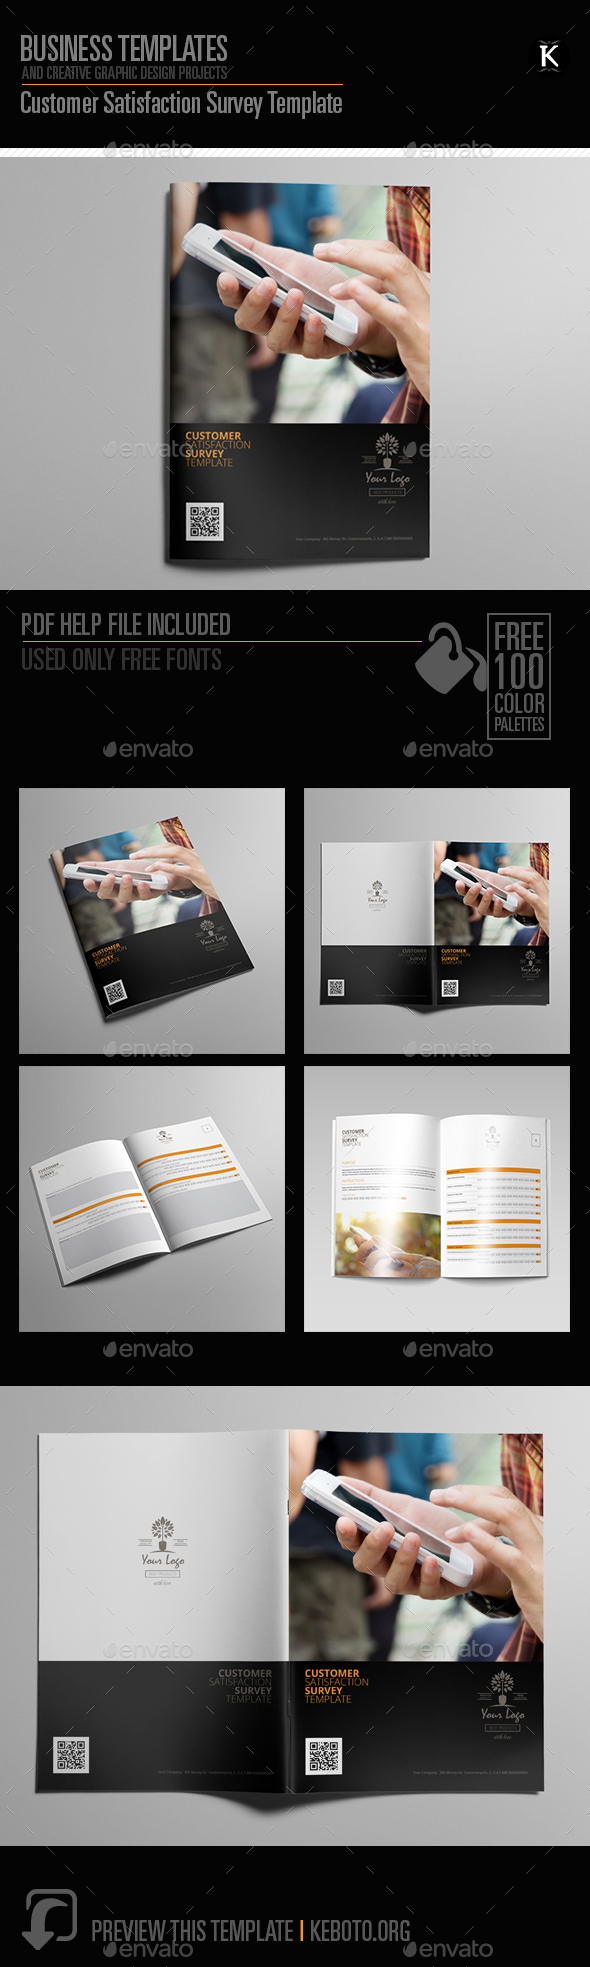 Customer Satisfaction Survey Template - Miscellaneous Print Templates